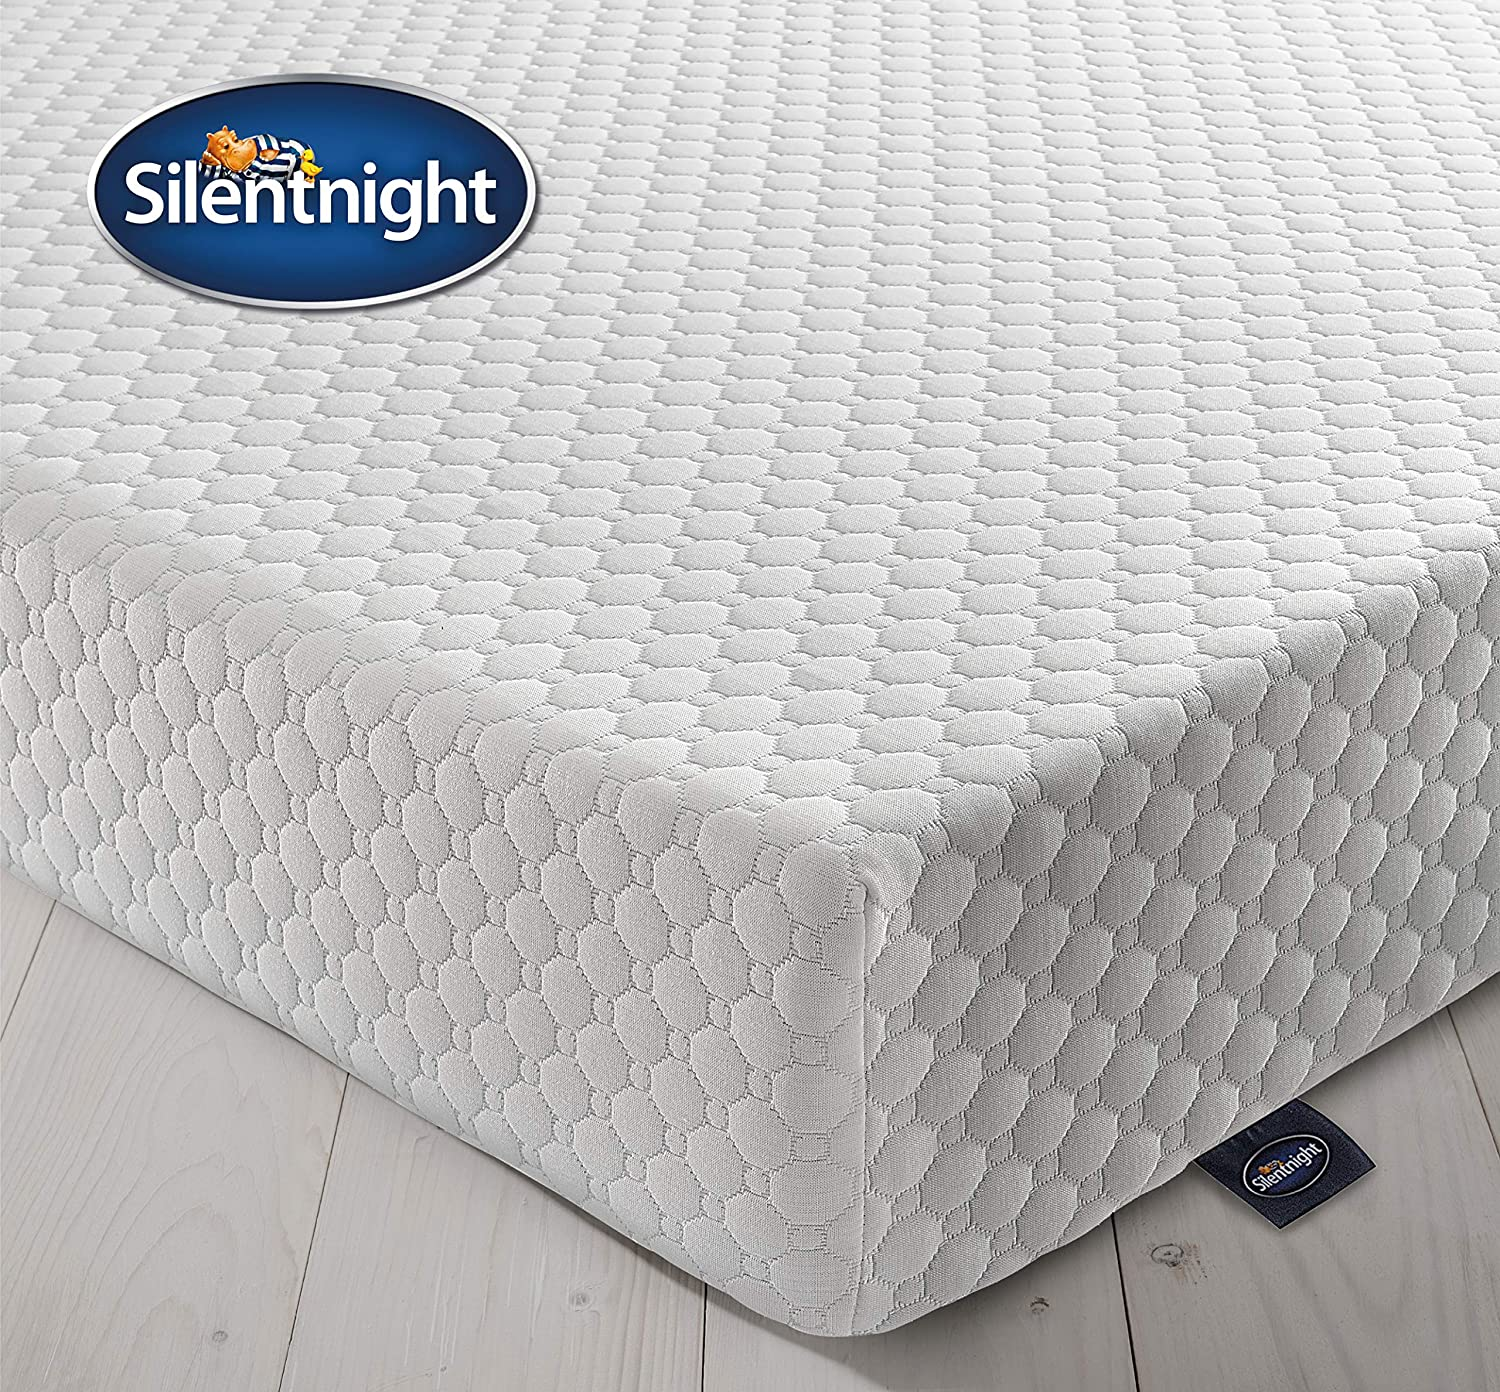 Silentnight 7 Zone Memory Foam Rolled Mattress Made In The Uk